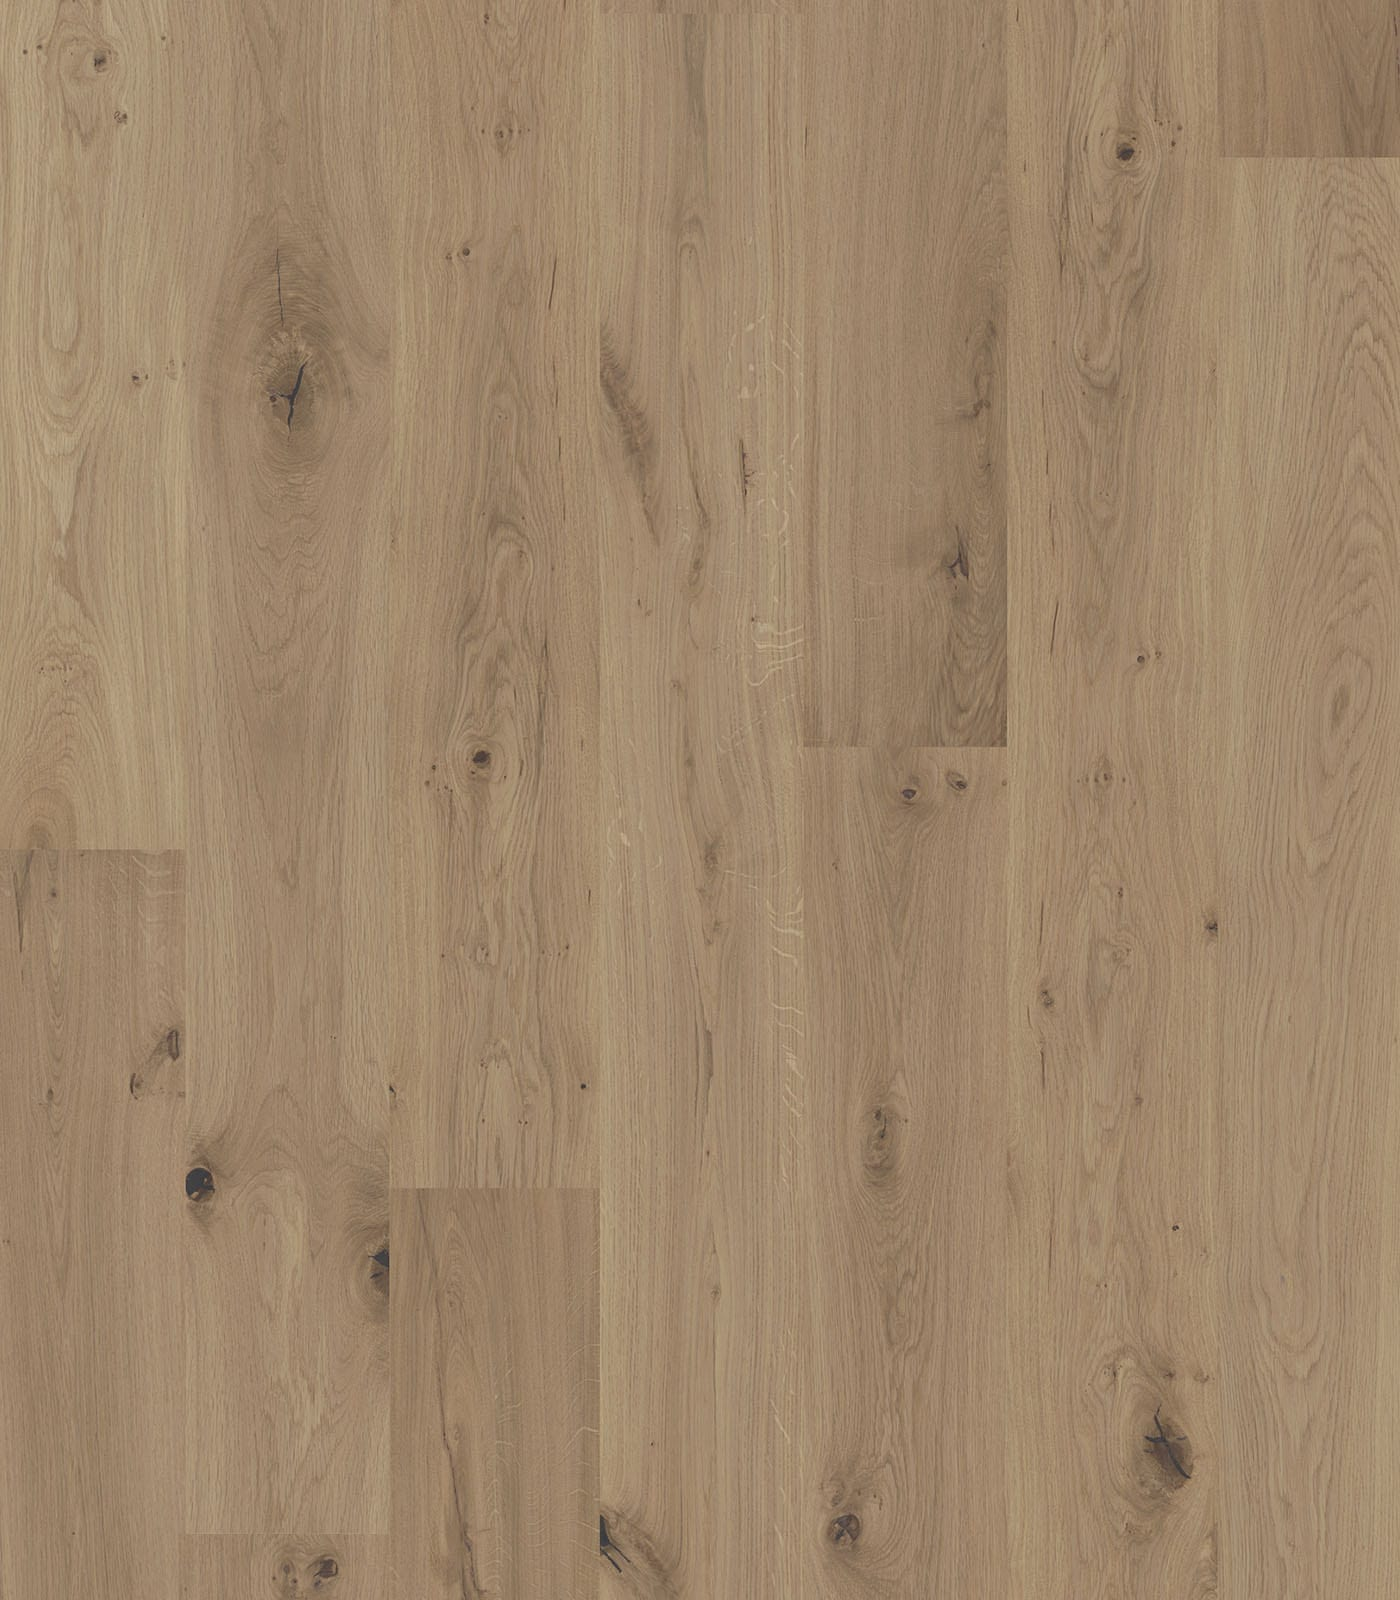 Alpamayo-Antique Collection-European Oak floors-flat